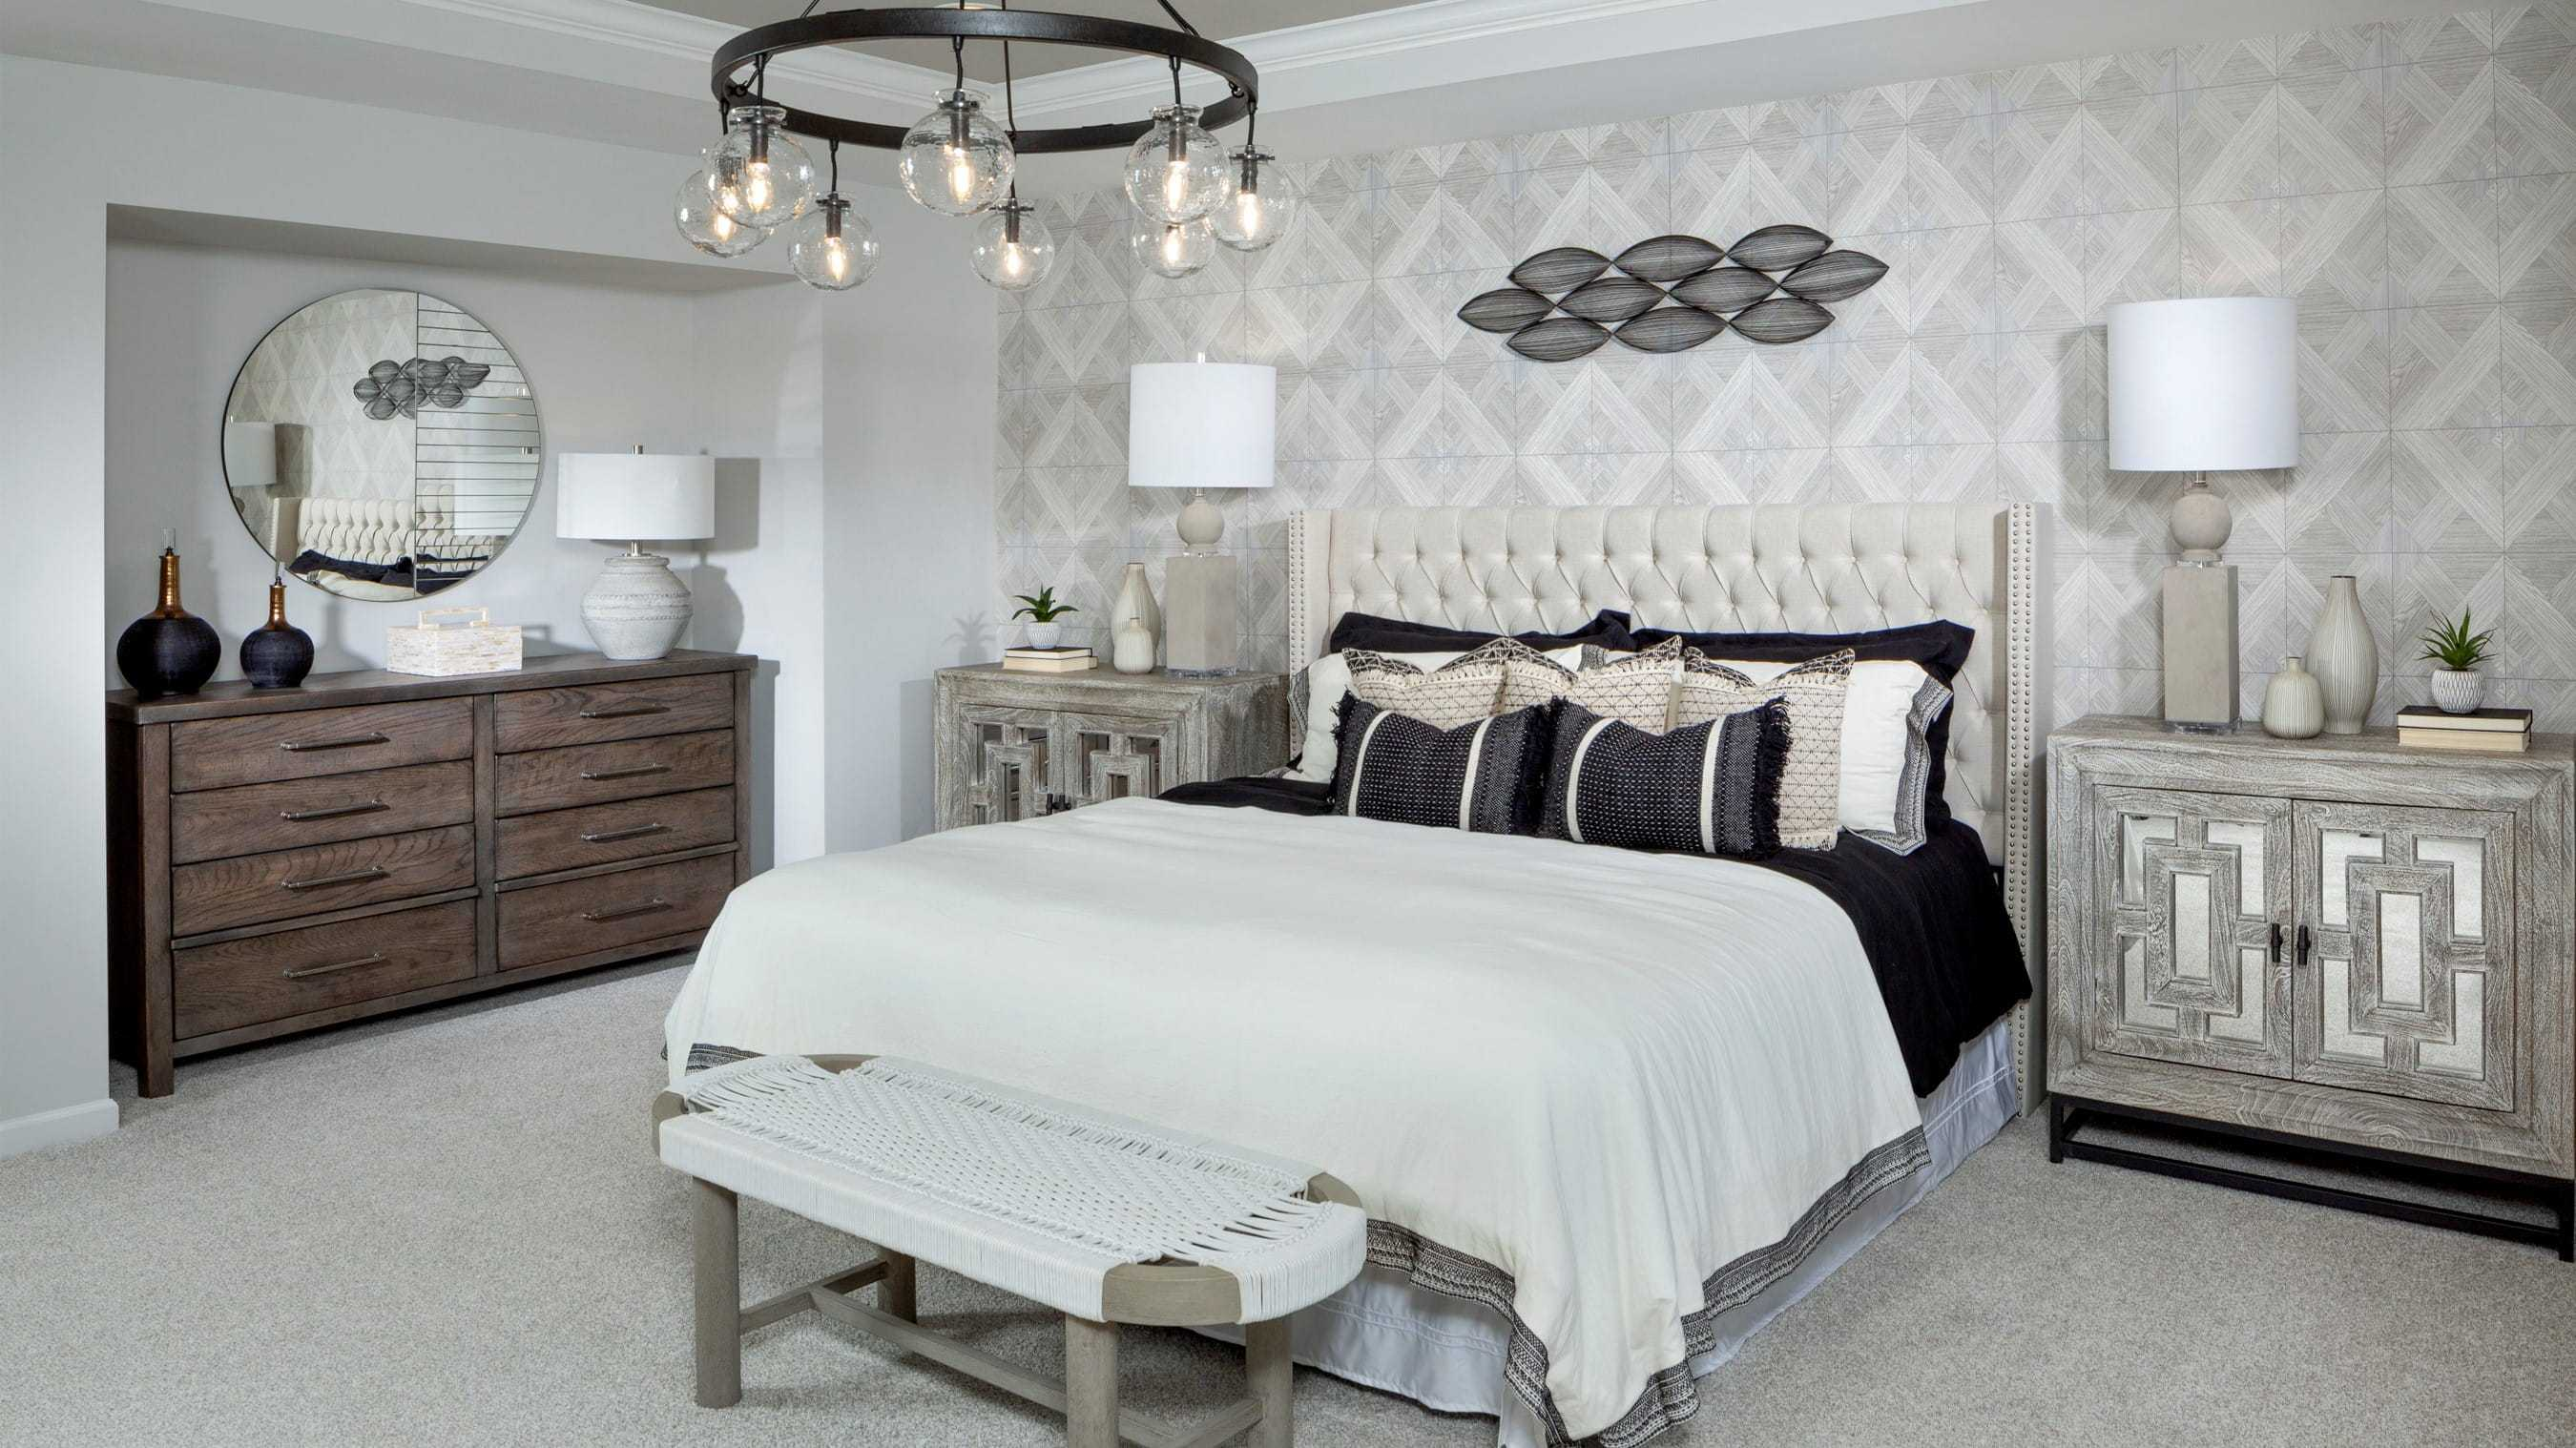 Bedroom featured in the Parker By Mattamy Homes in Charlotte, NC